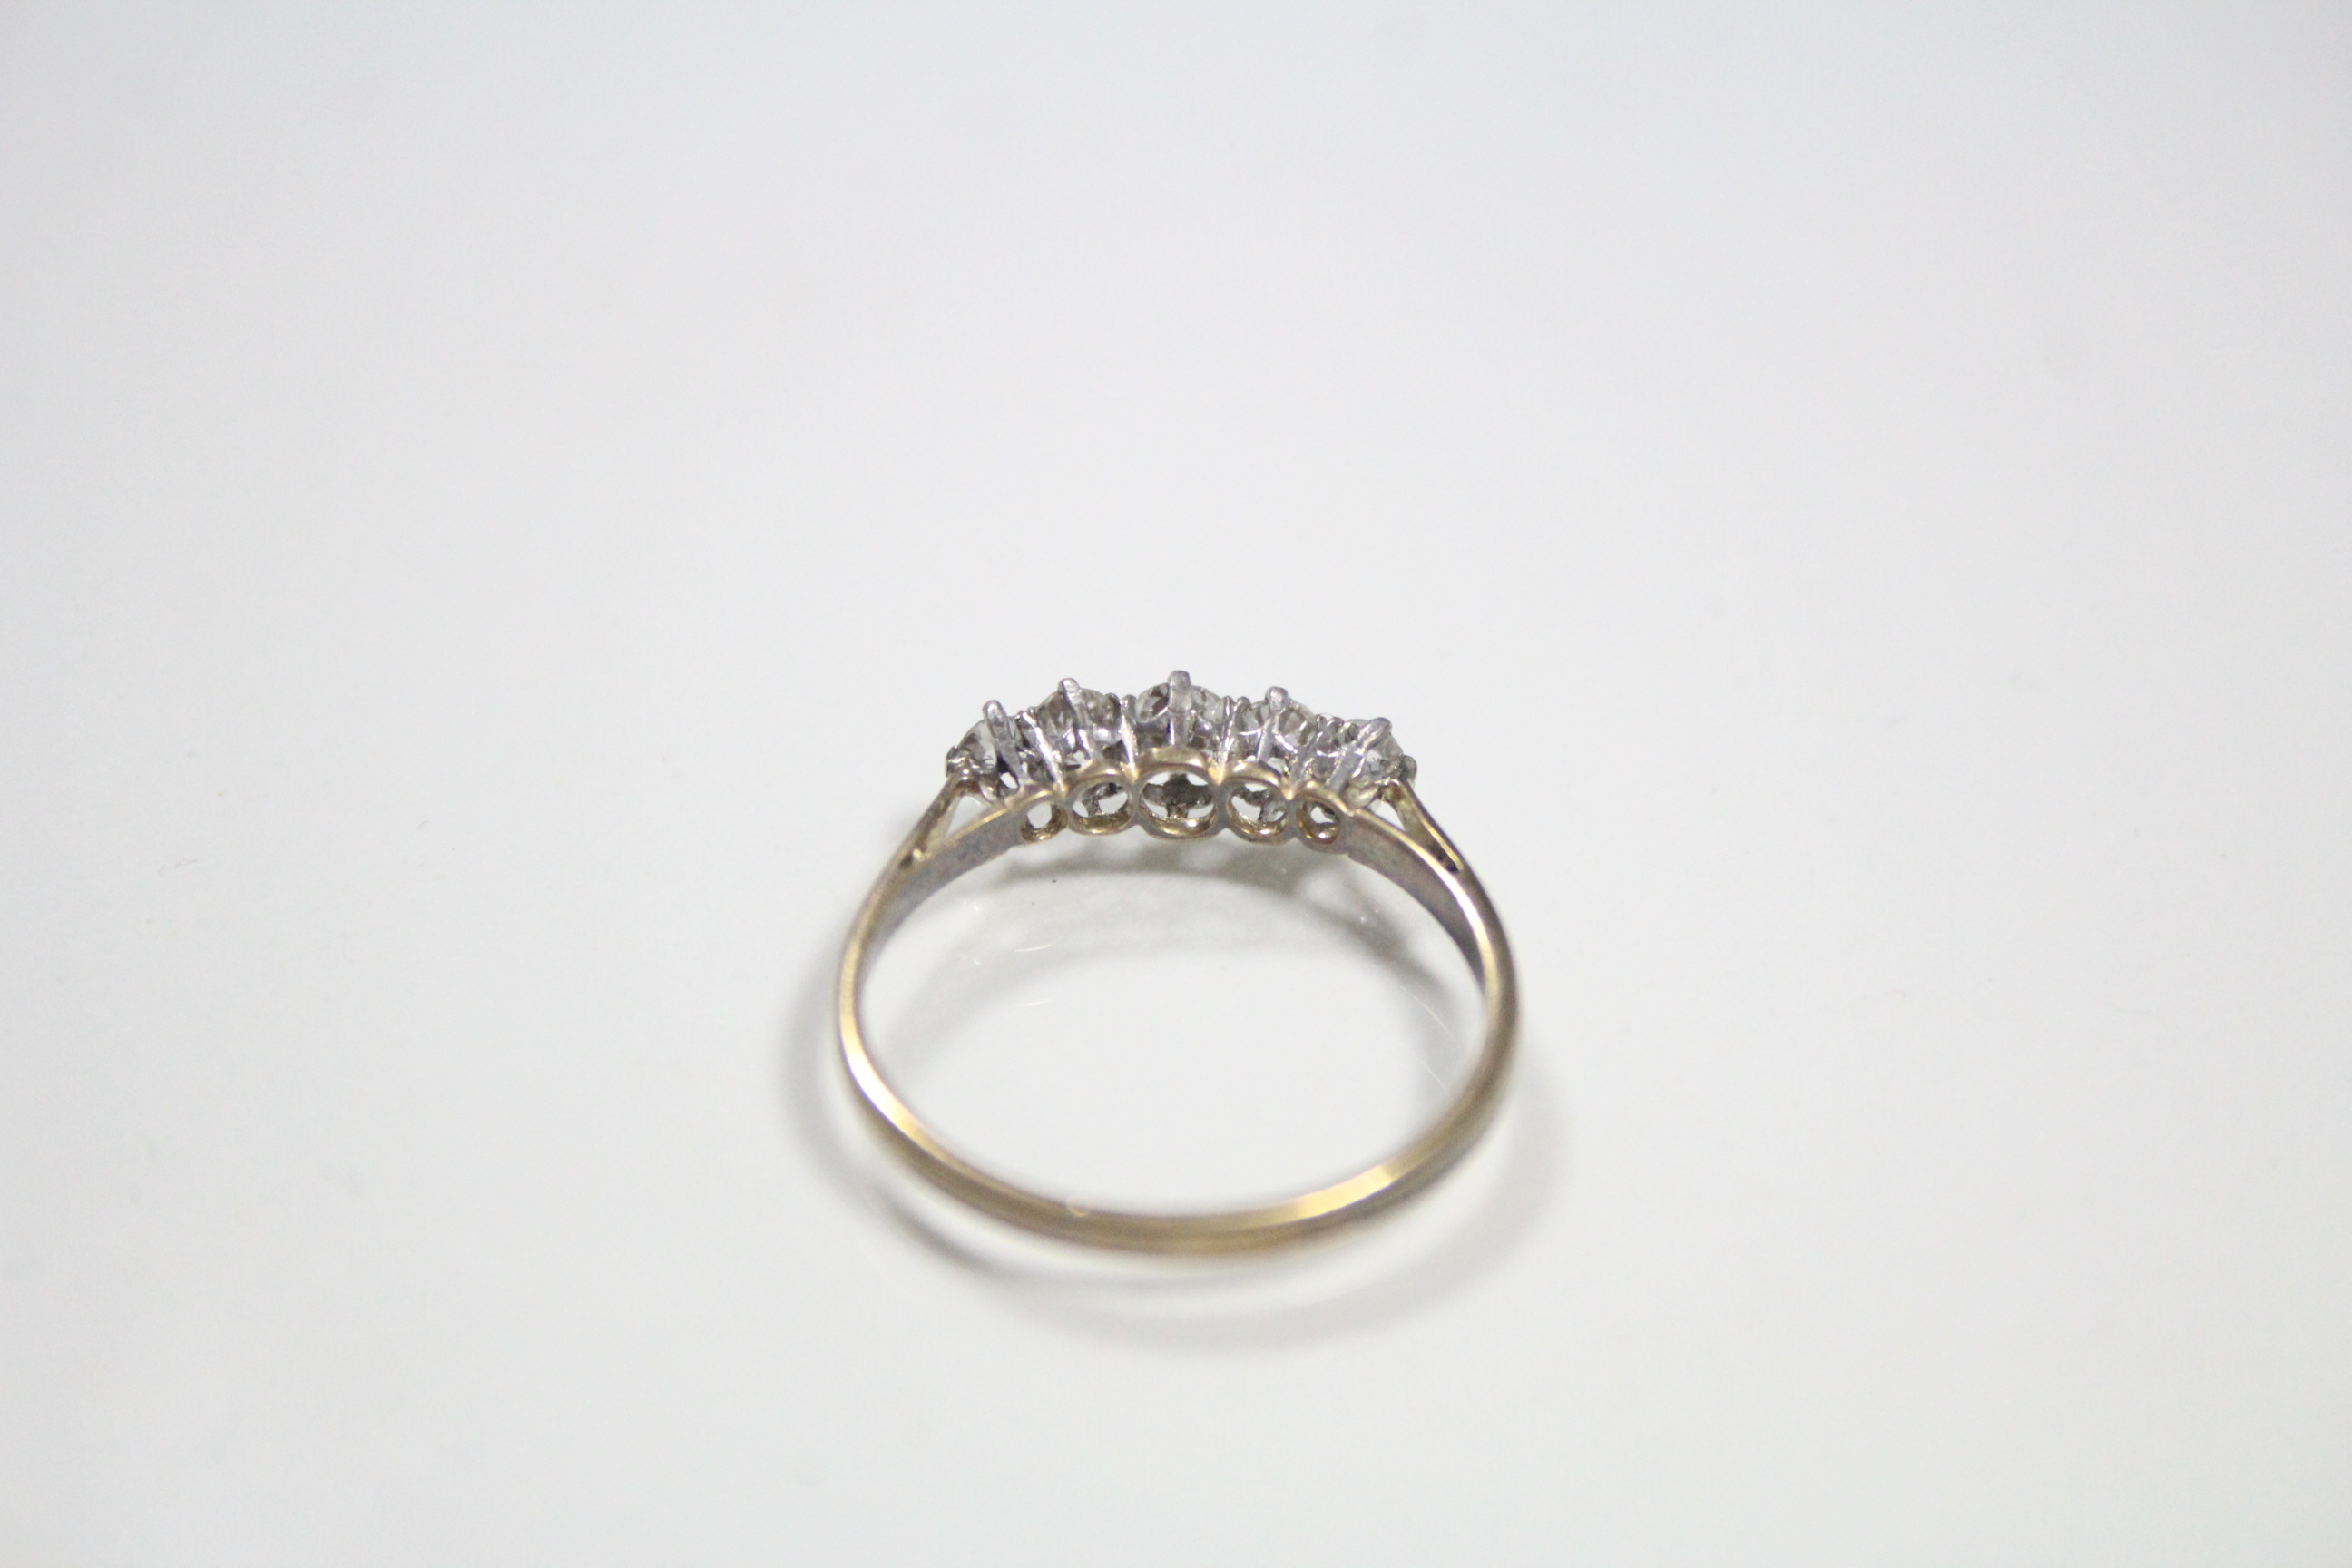 Lot 54 - A diamond ring, the five graduated stones set to an un-marked white metal shank.